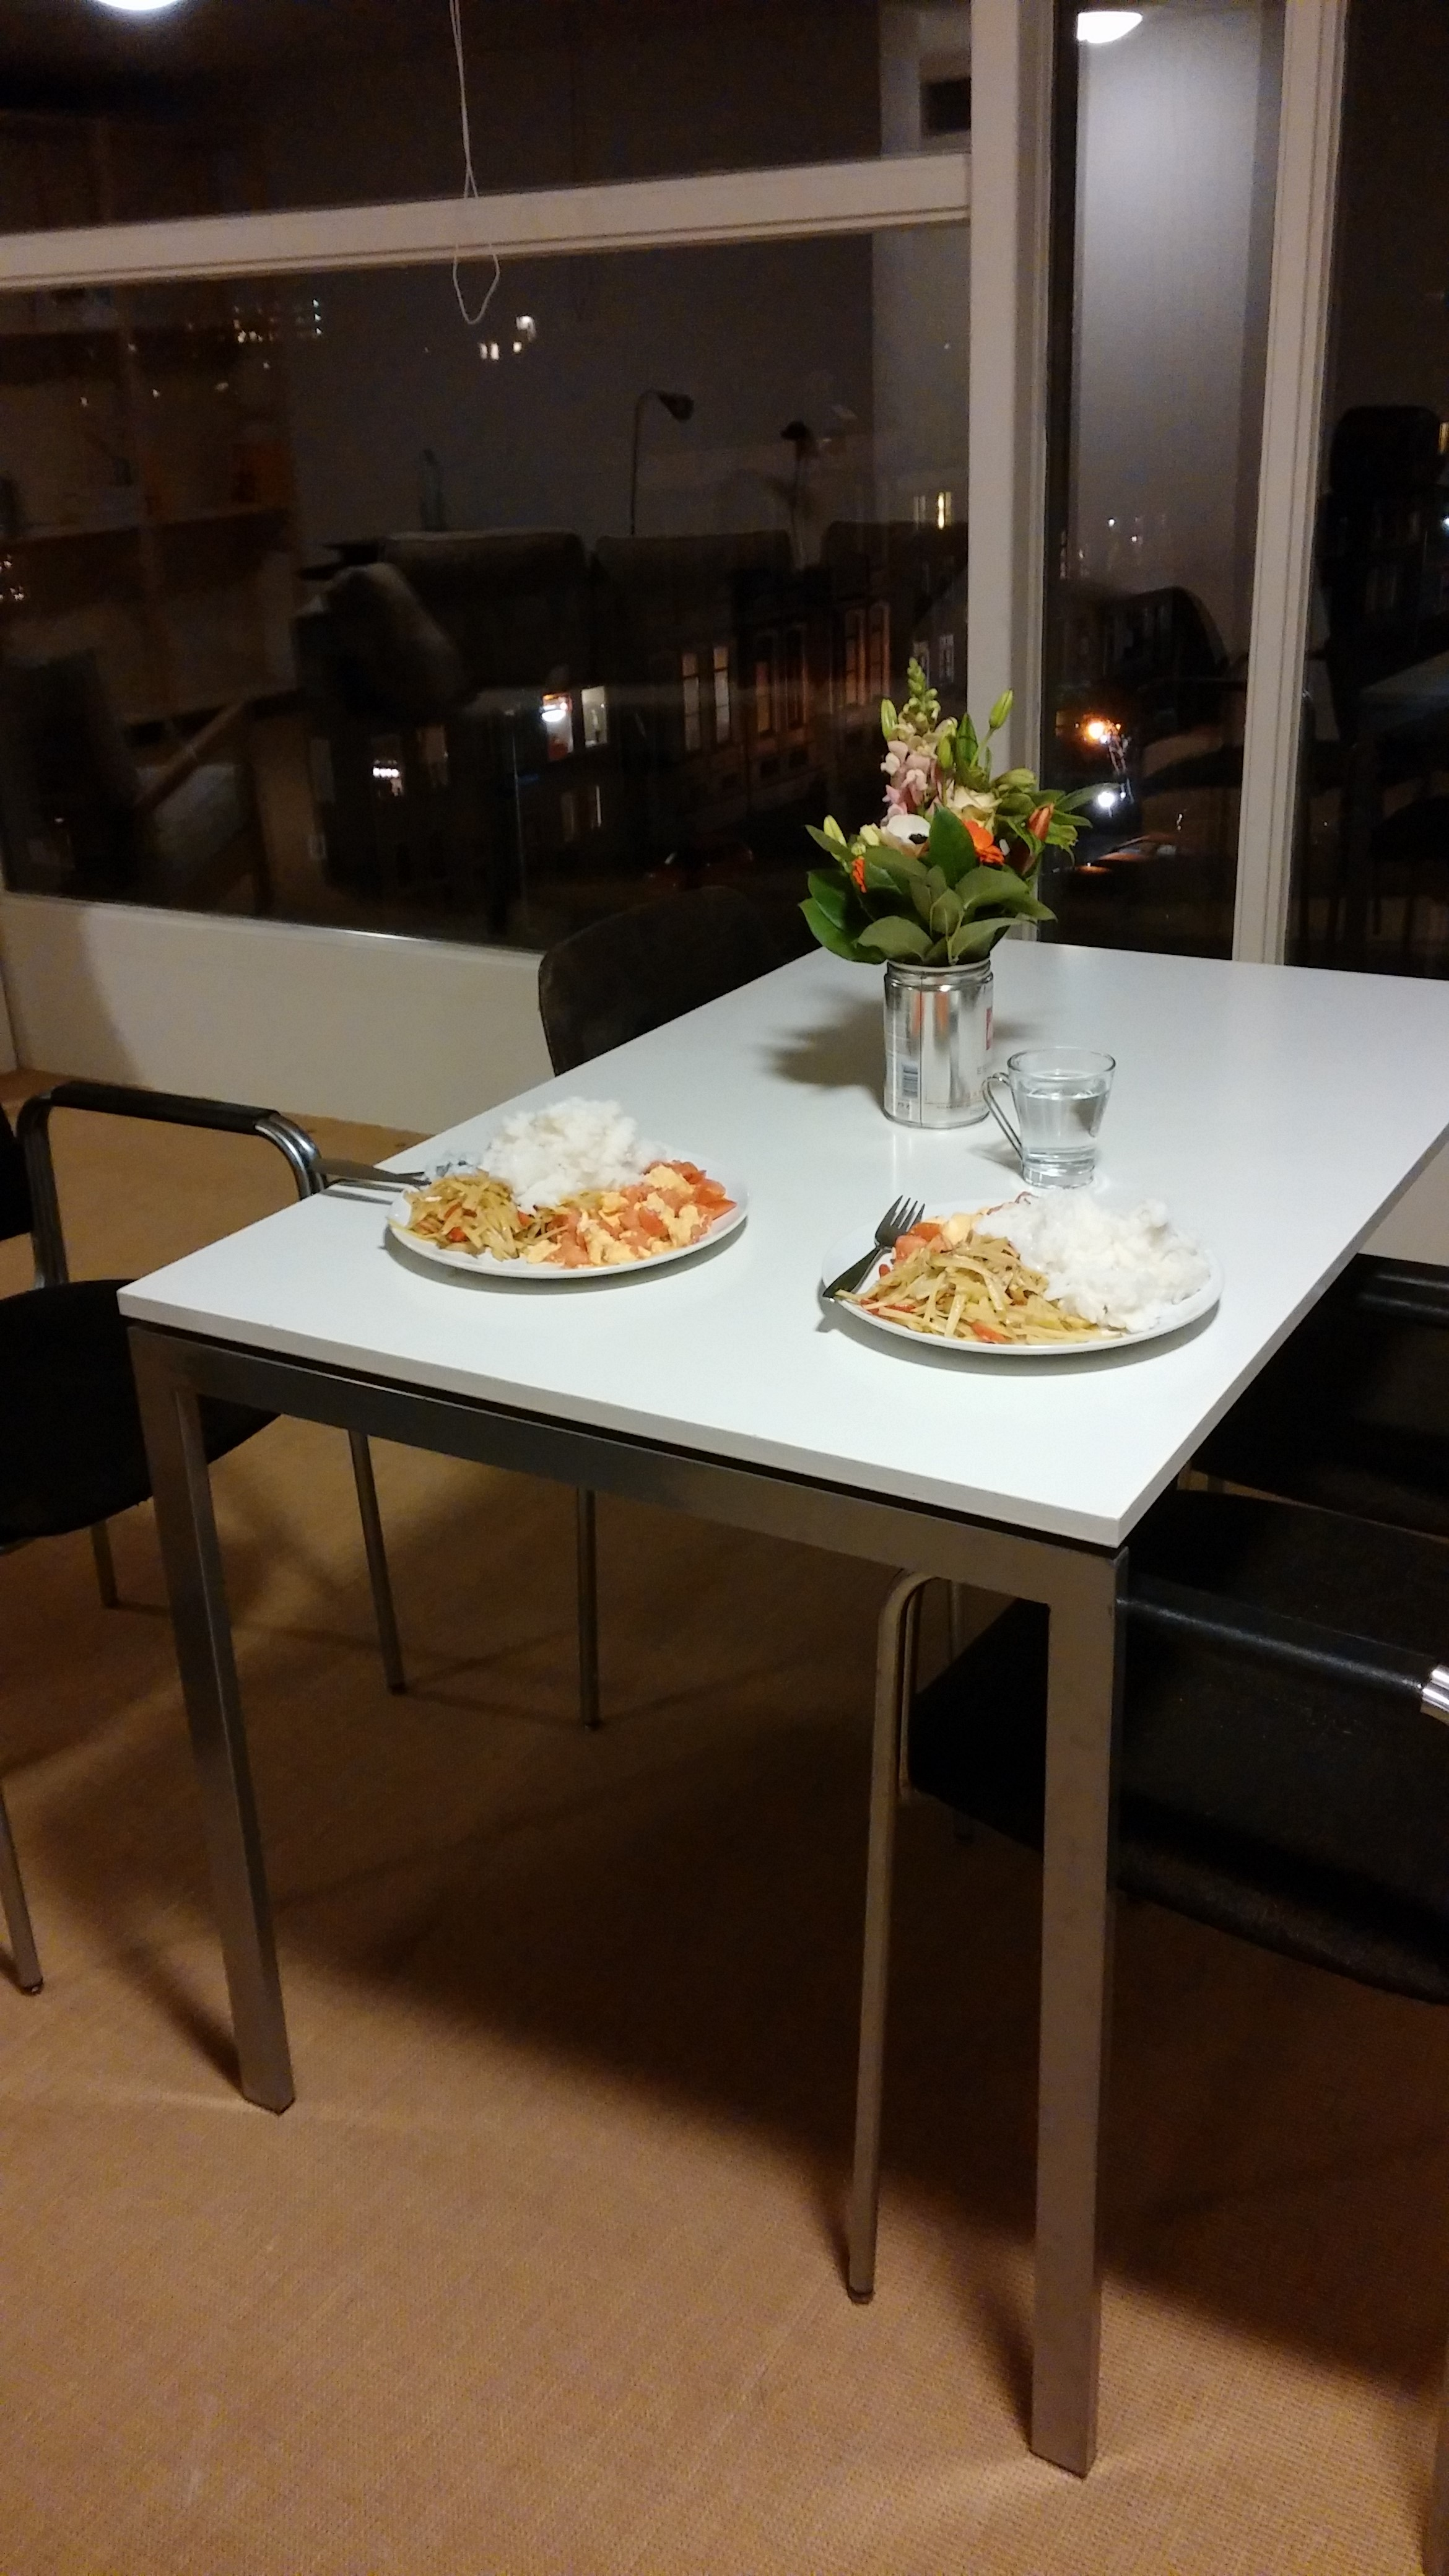 Dinner in the new apartment